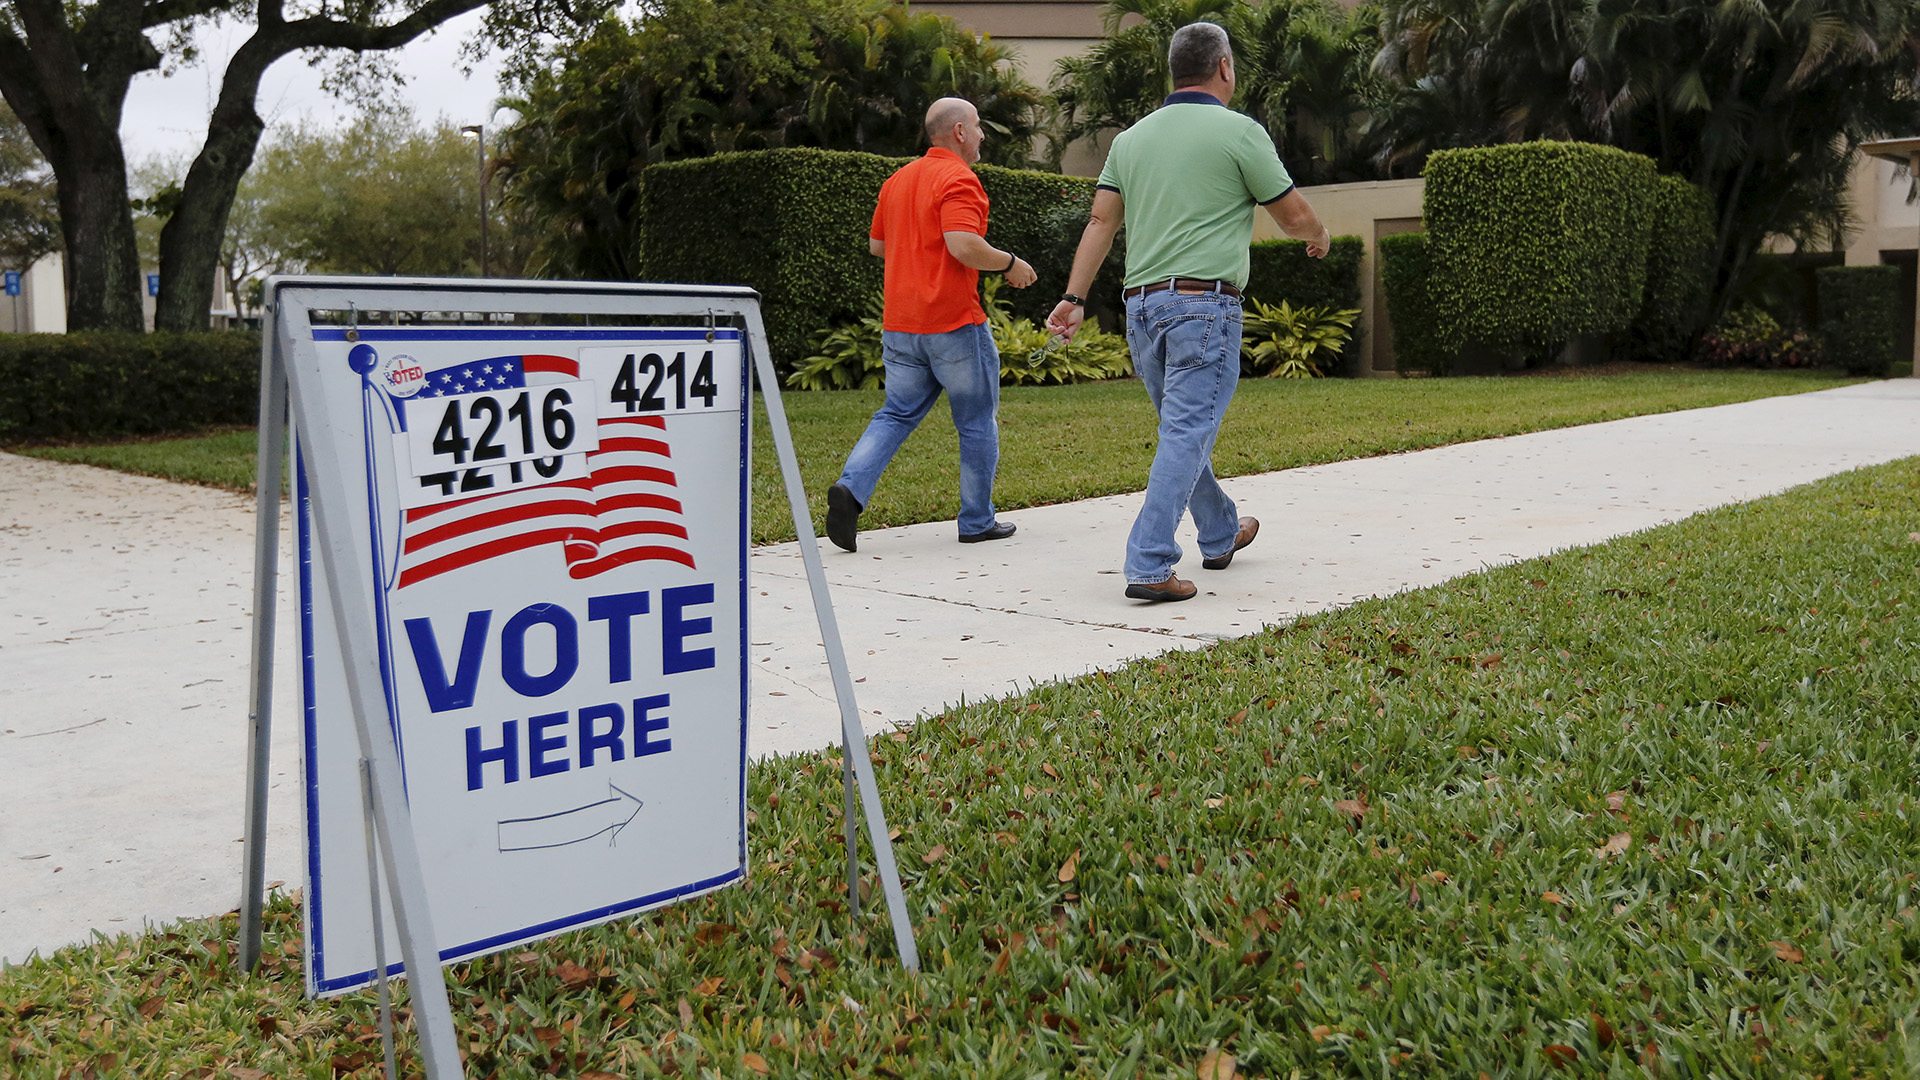 New voter ID rules, other election changes could cause confusion